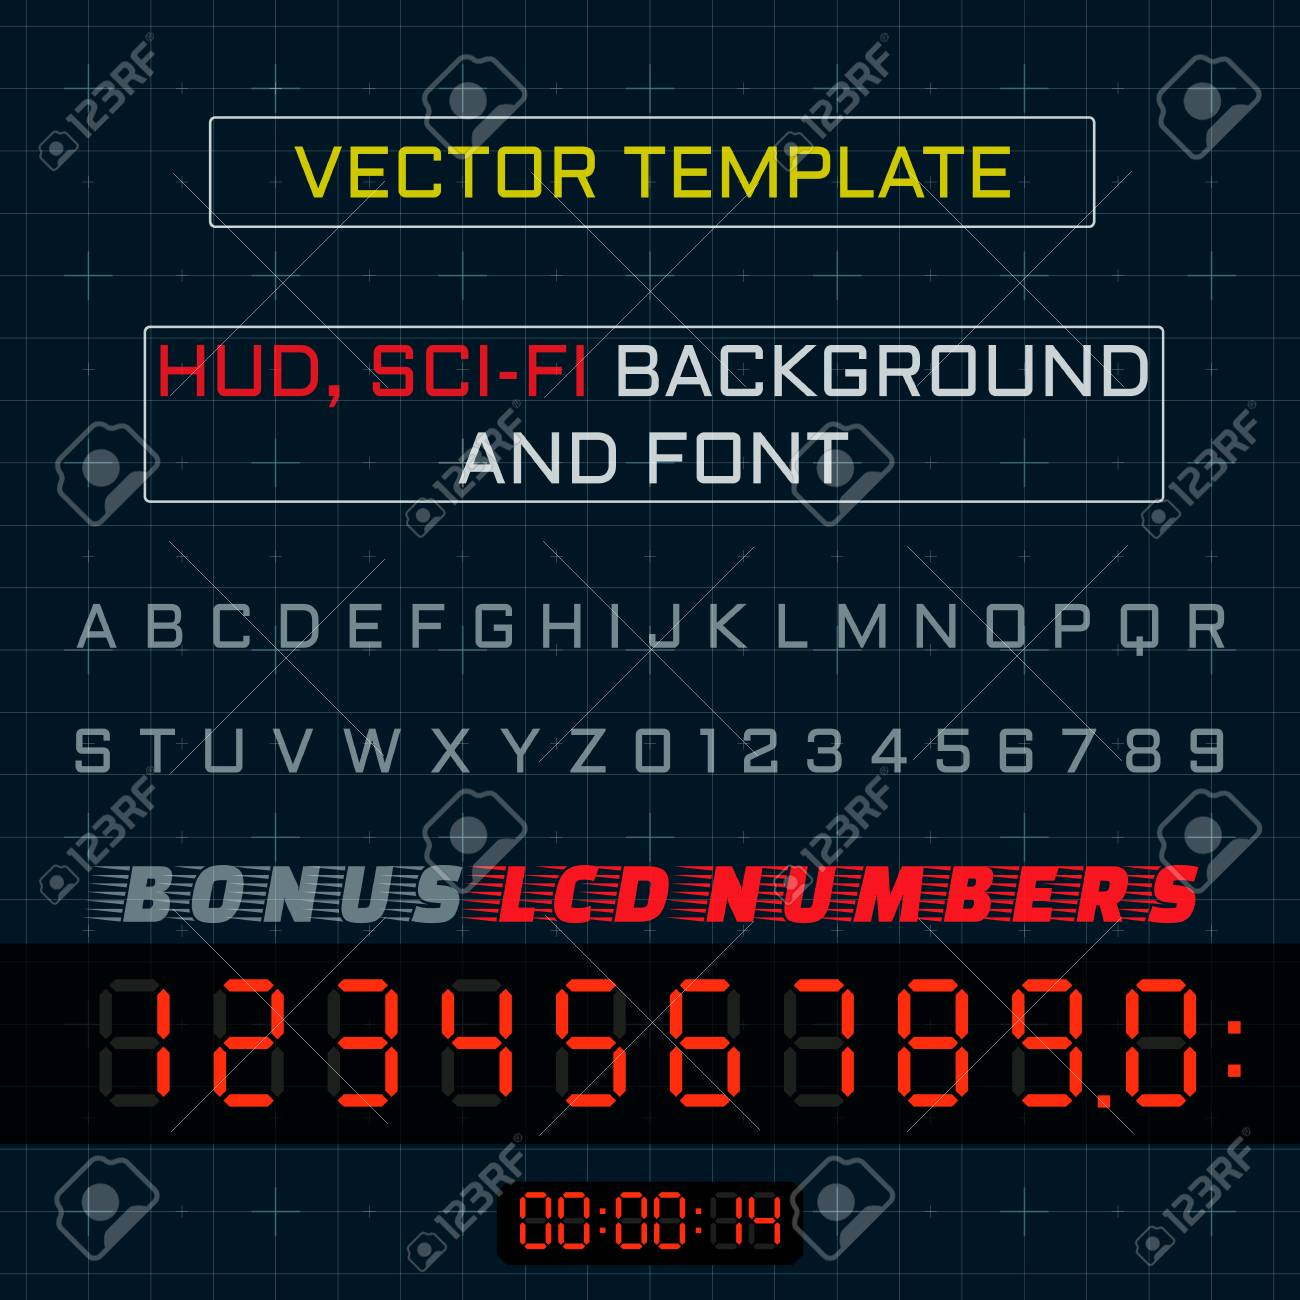 Background Font And Lcd Numbers For Heads Up Display Hud Royalty Free Cliparts Vectors And Stock Illustration Image 68760574